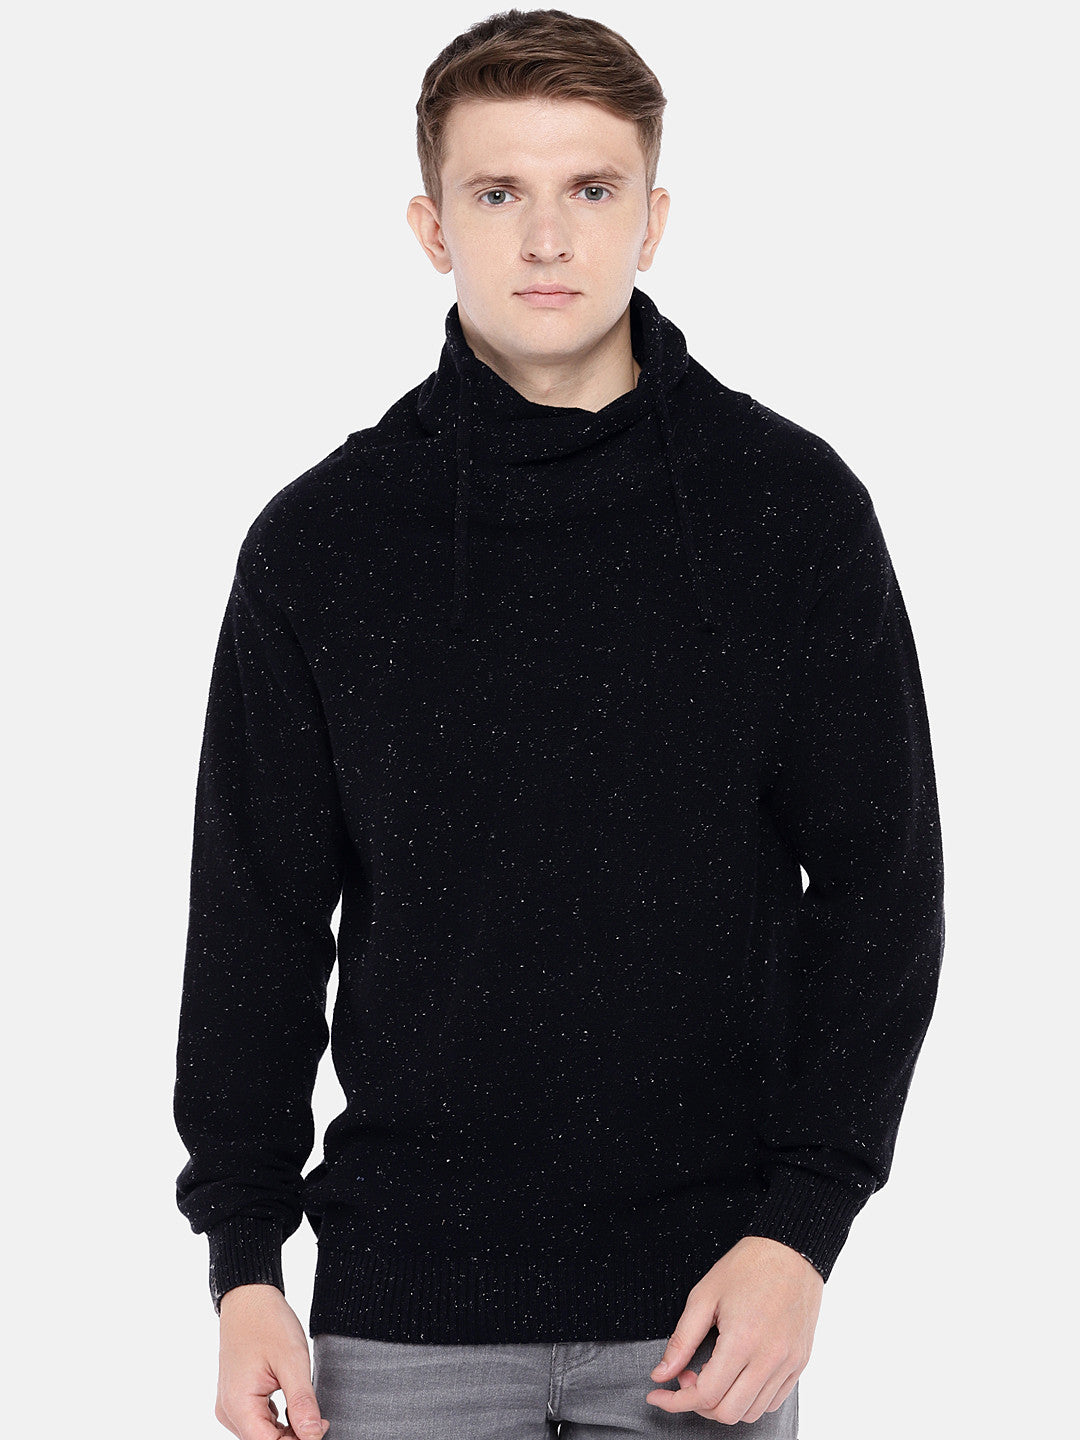 Black Self Design Sweater-1